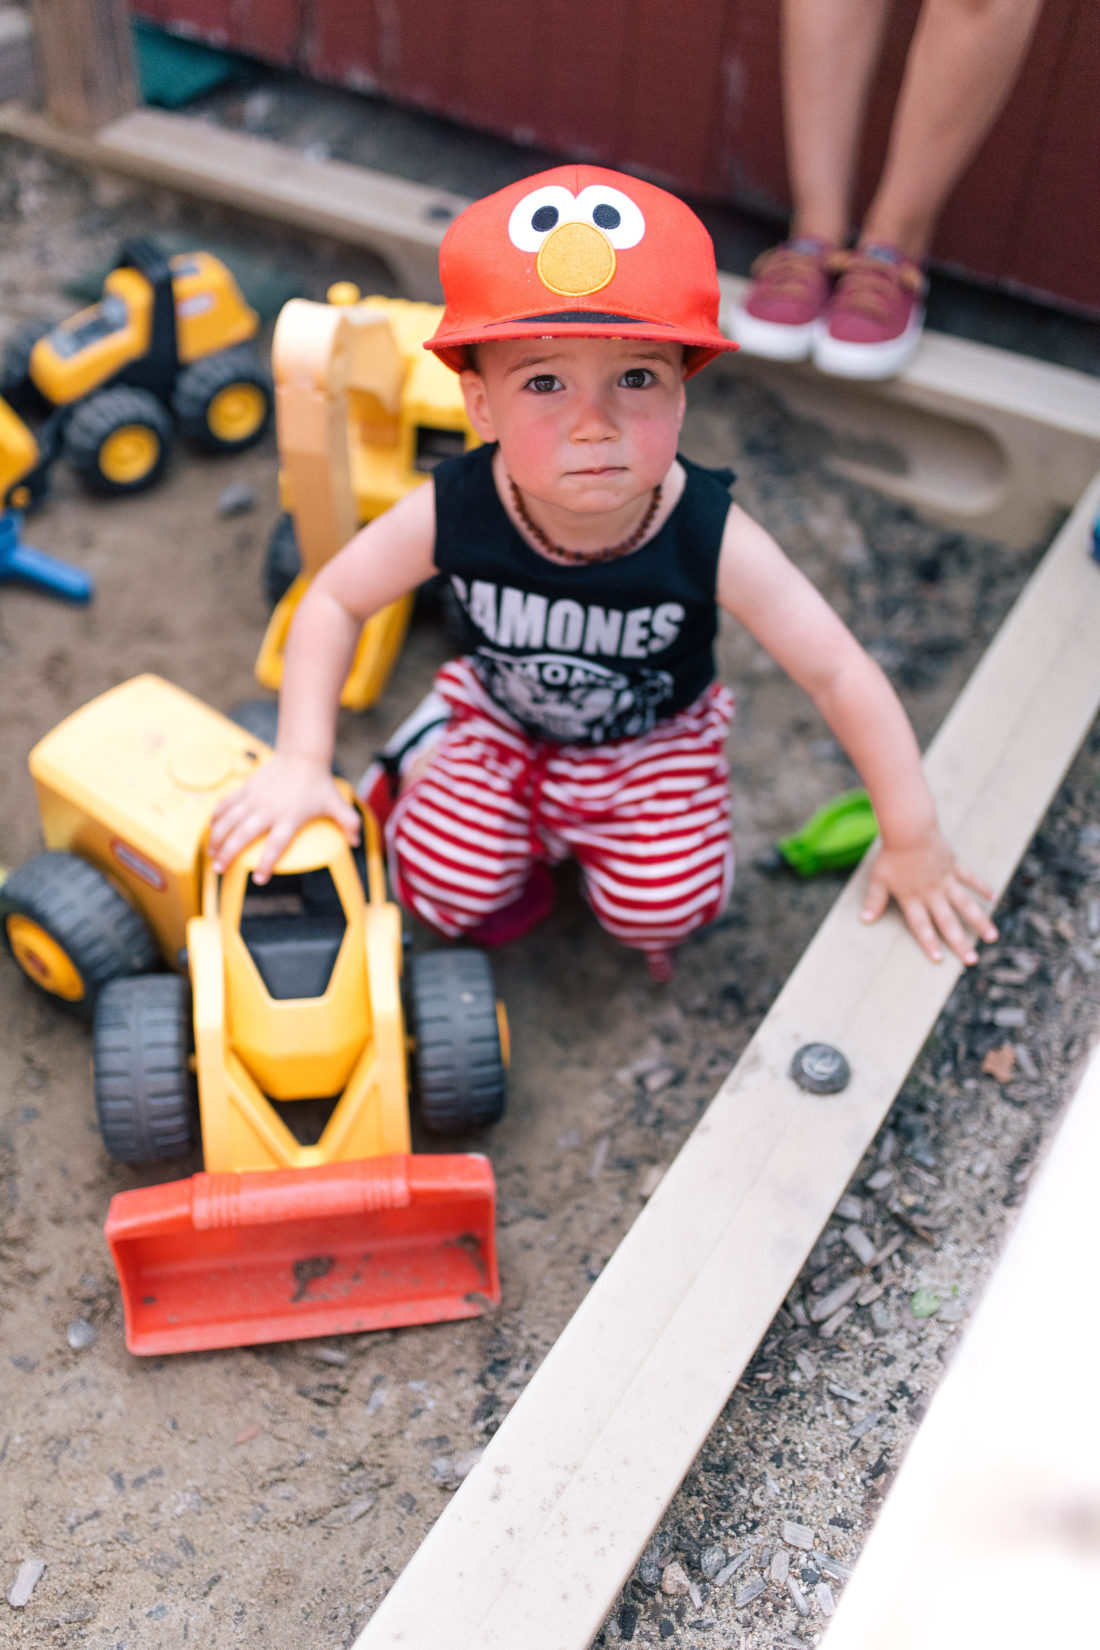 Major Martino wears an Elmo hat, and a ramones tank top, and plays in the sand at a playground in Connecticut